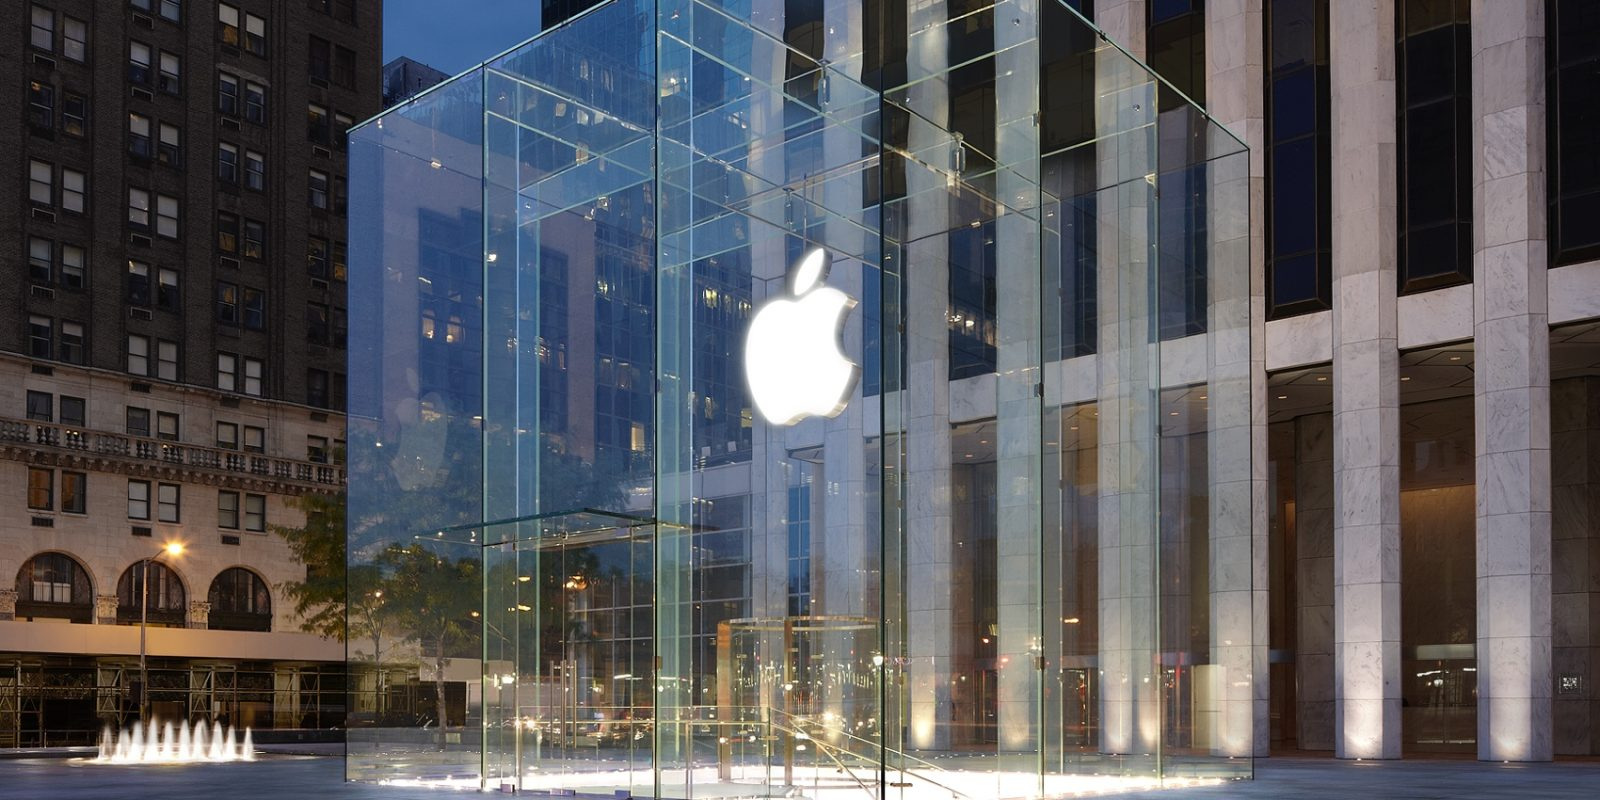 Apple's Redesigned Fifth Avenue Retail Store to Reopen Around Nov. 2018